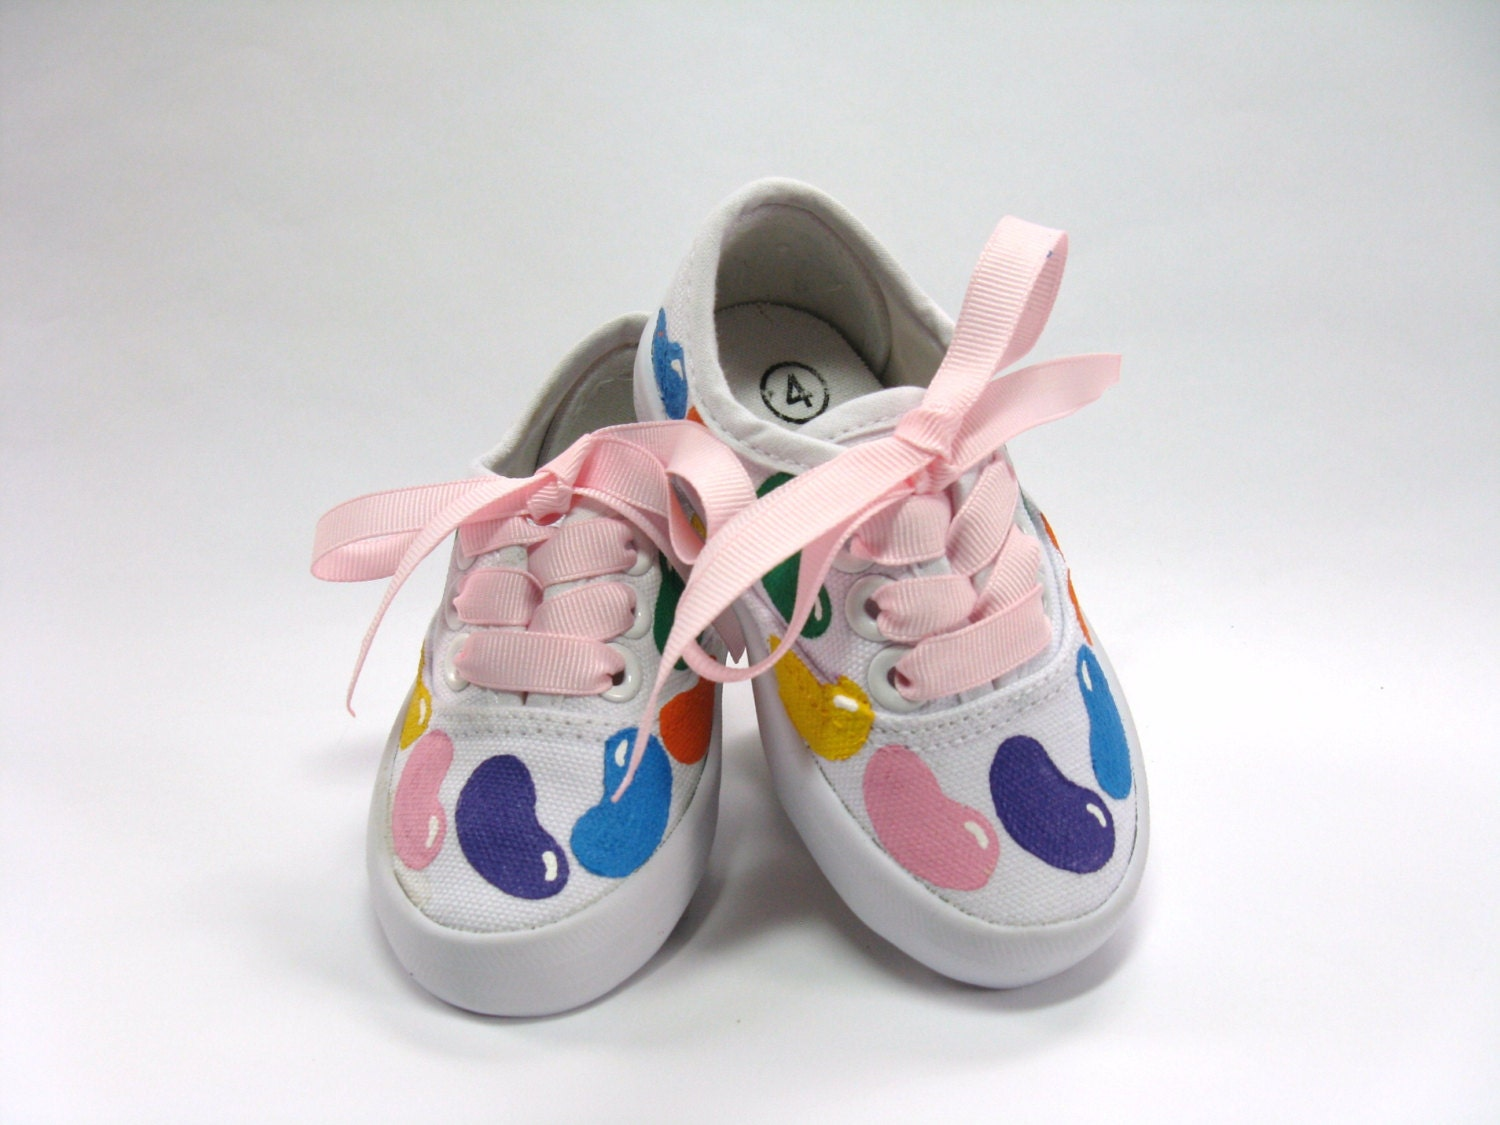 Easter Shoes 28 Images Add White Leather Squeaky